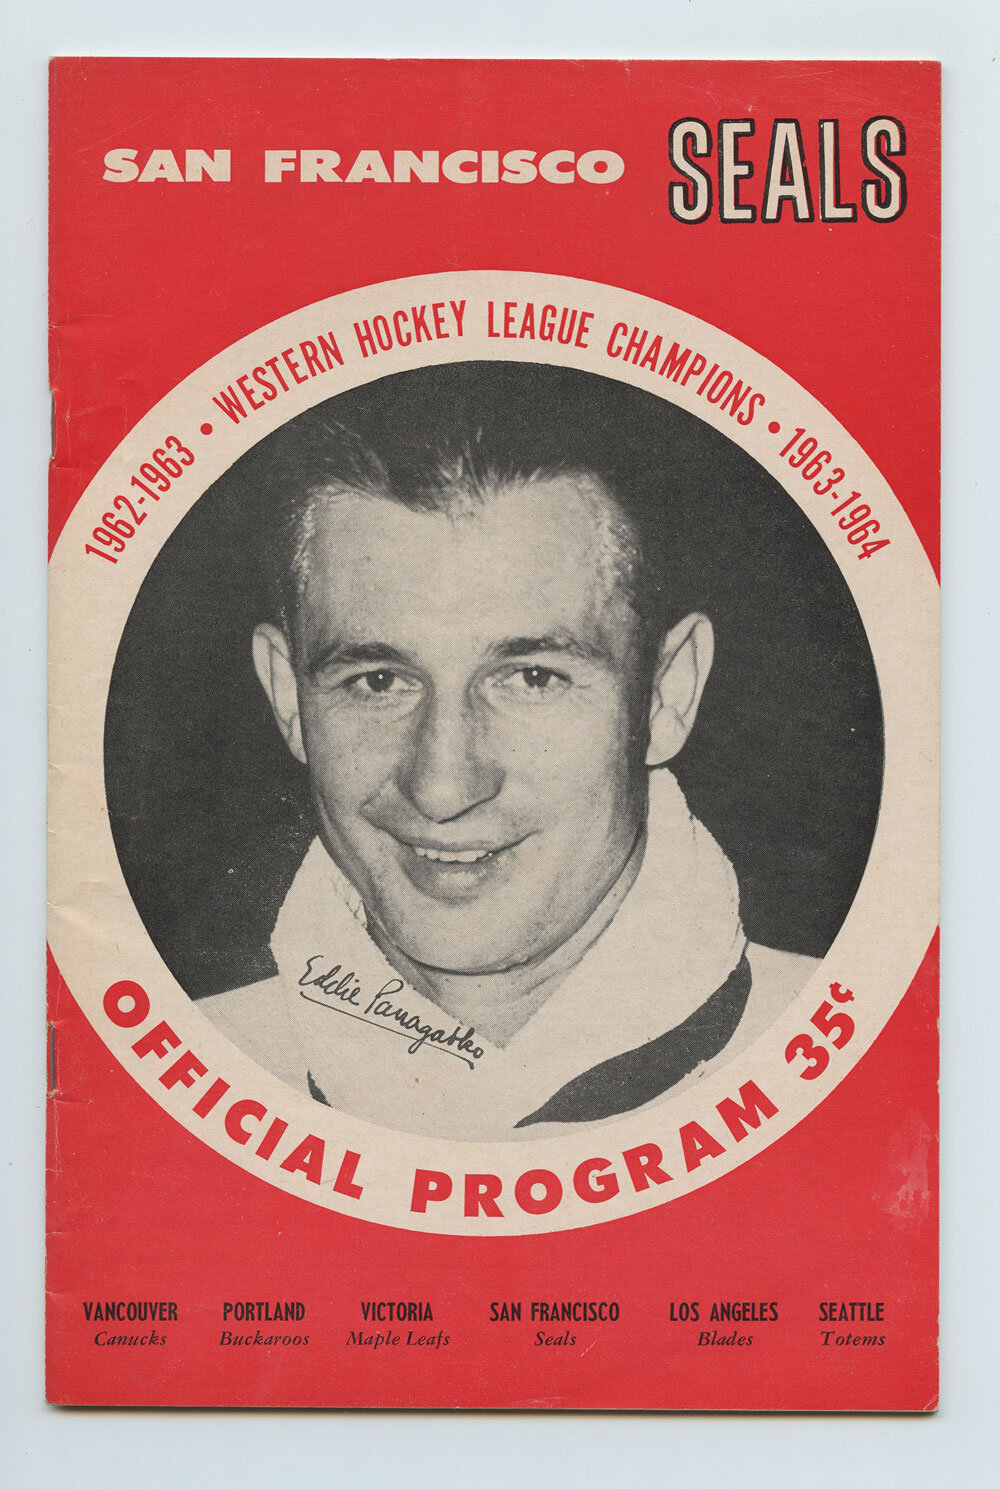 1963 San Francisco Seals Vancouver Blades Program book